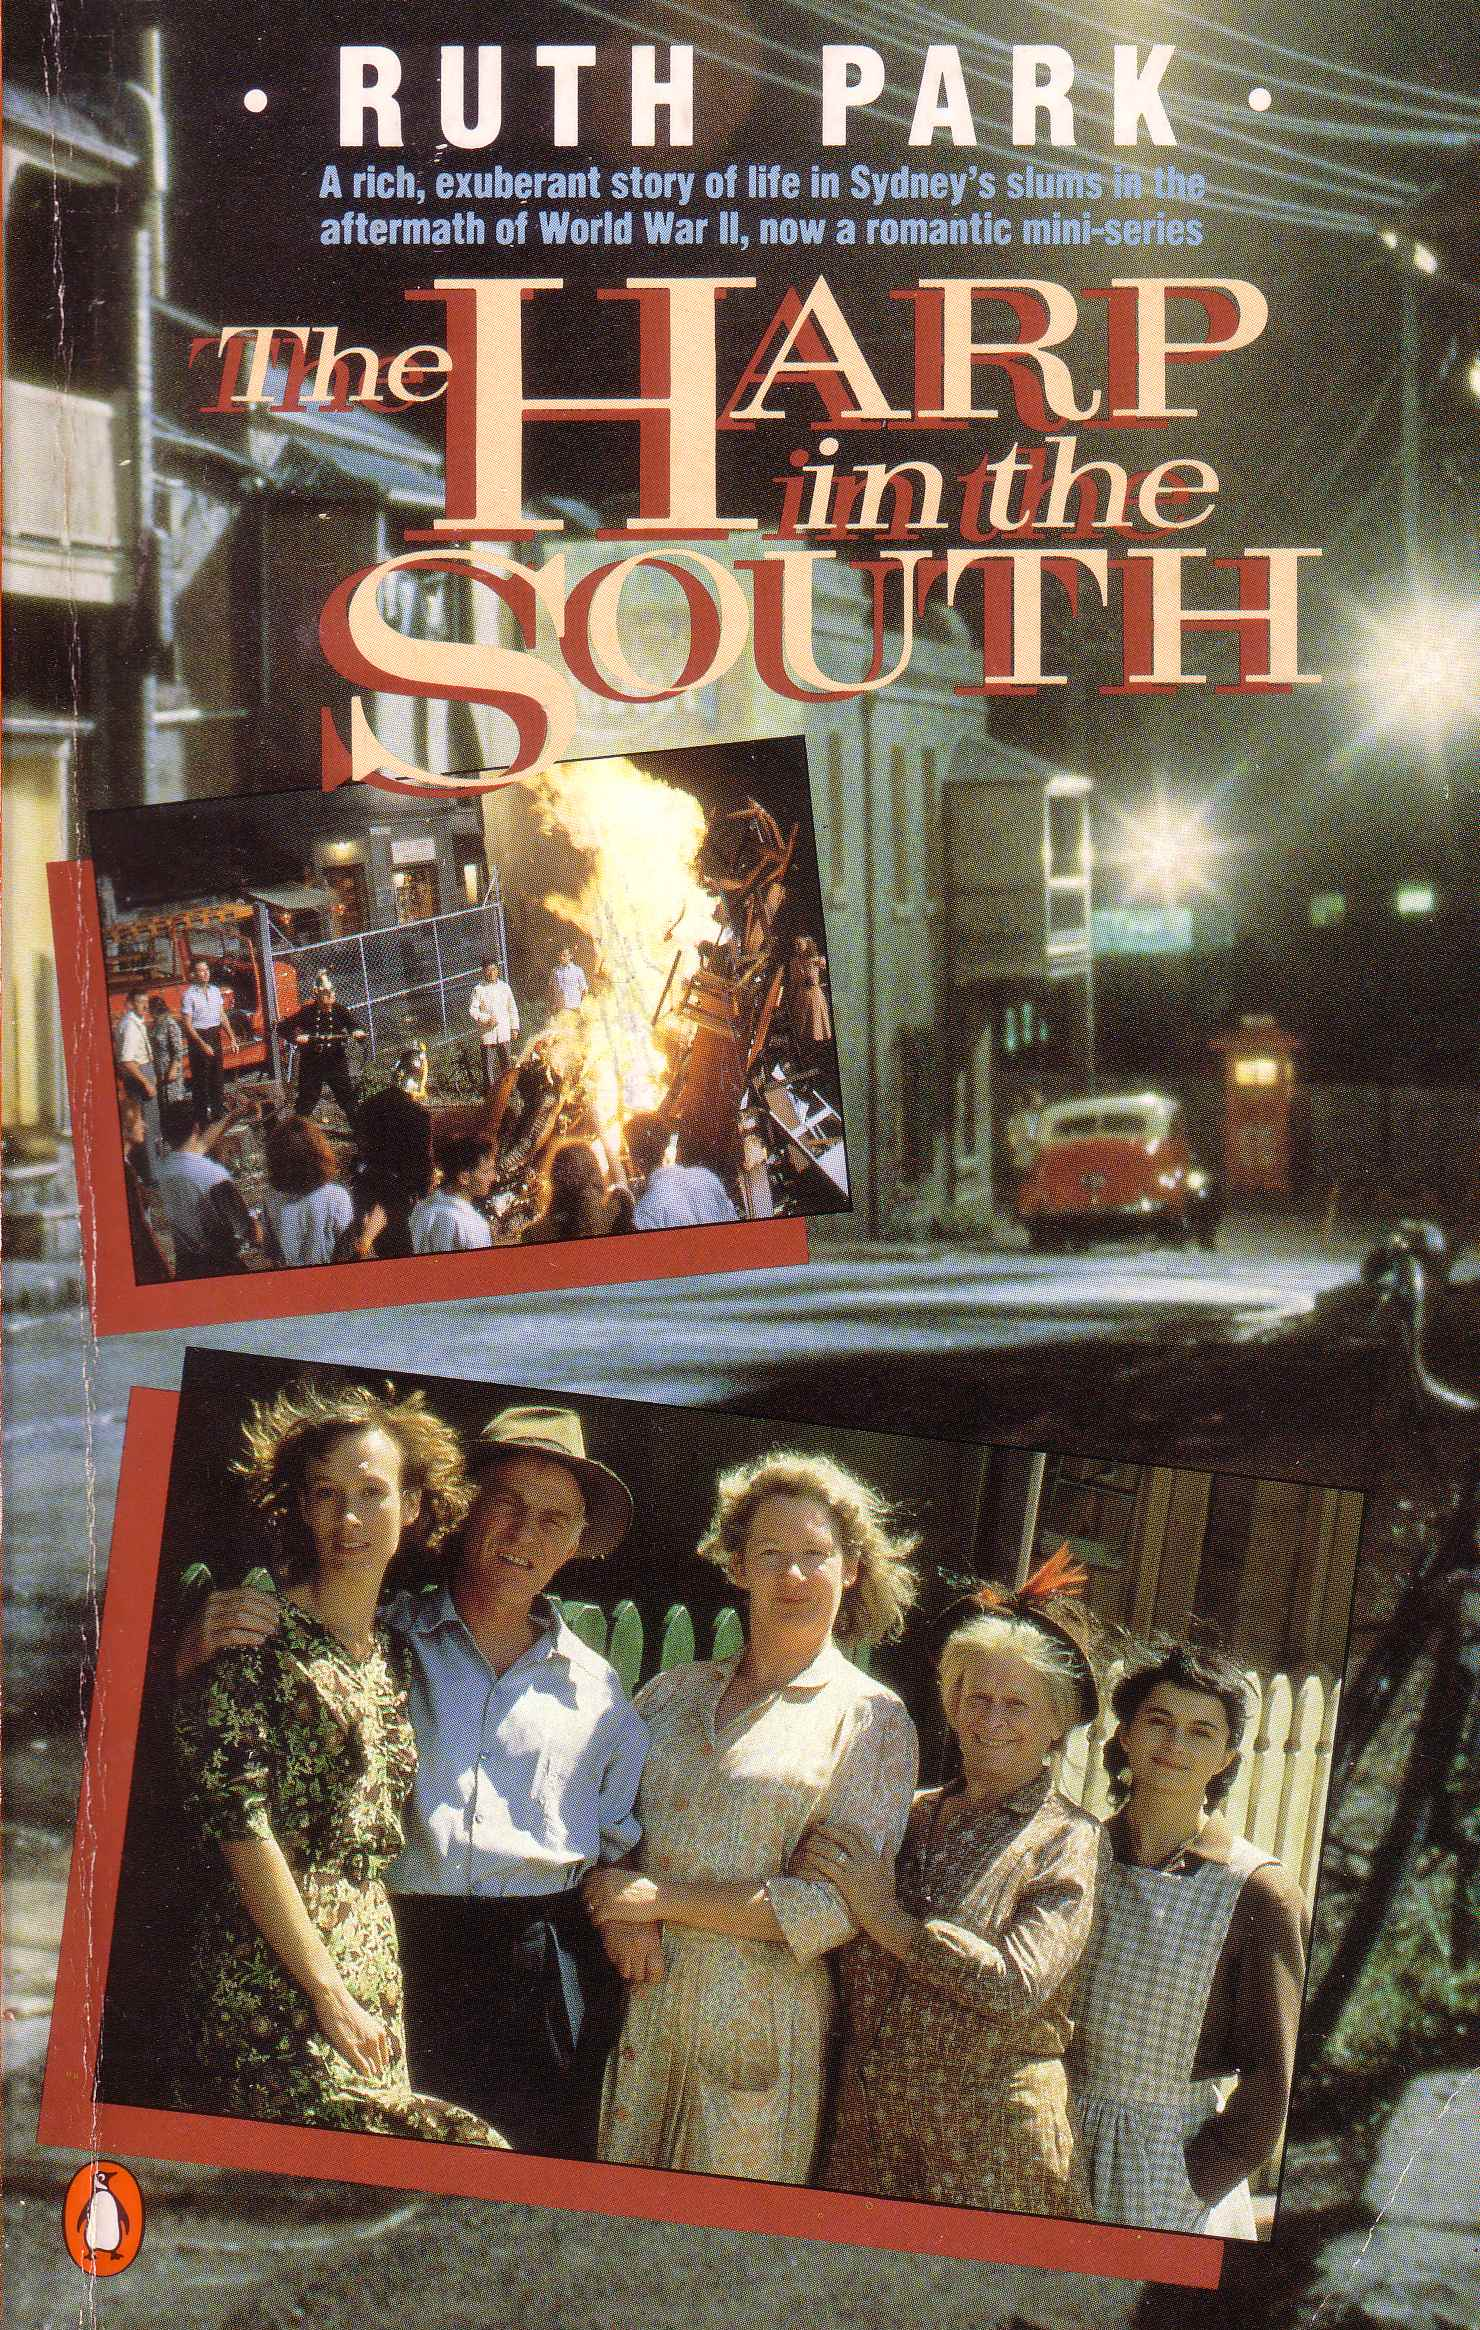 The Harp in the South, by Ruth Park | ANZ LitLovers LitBlog